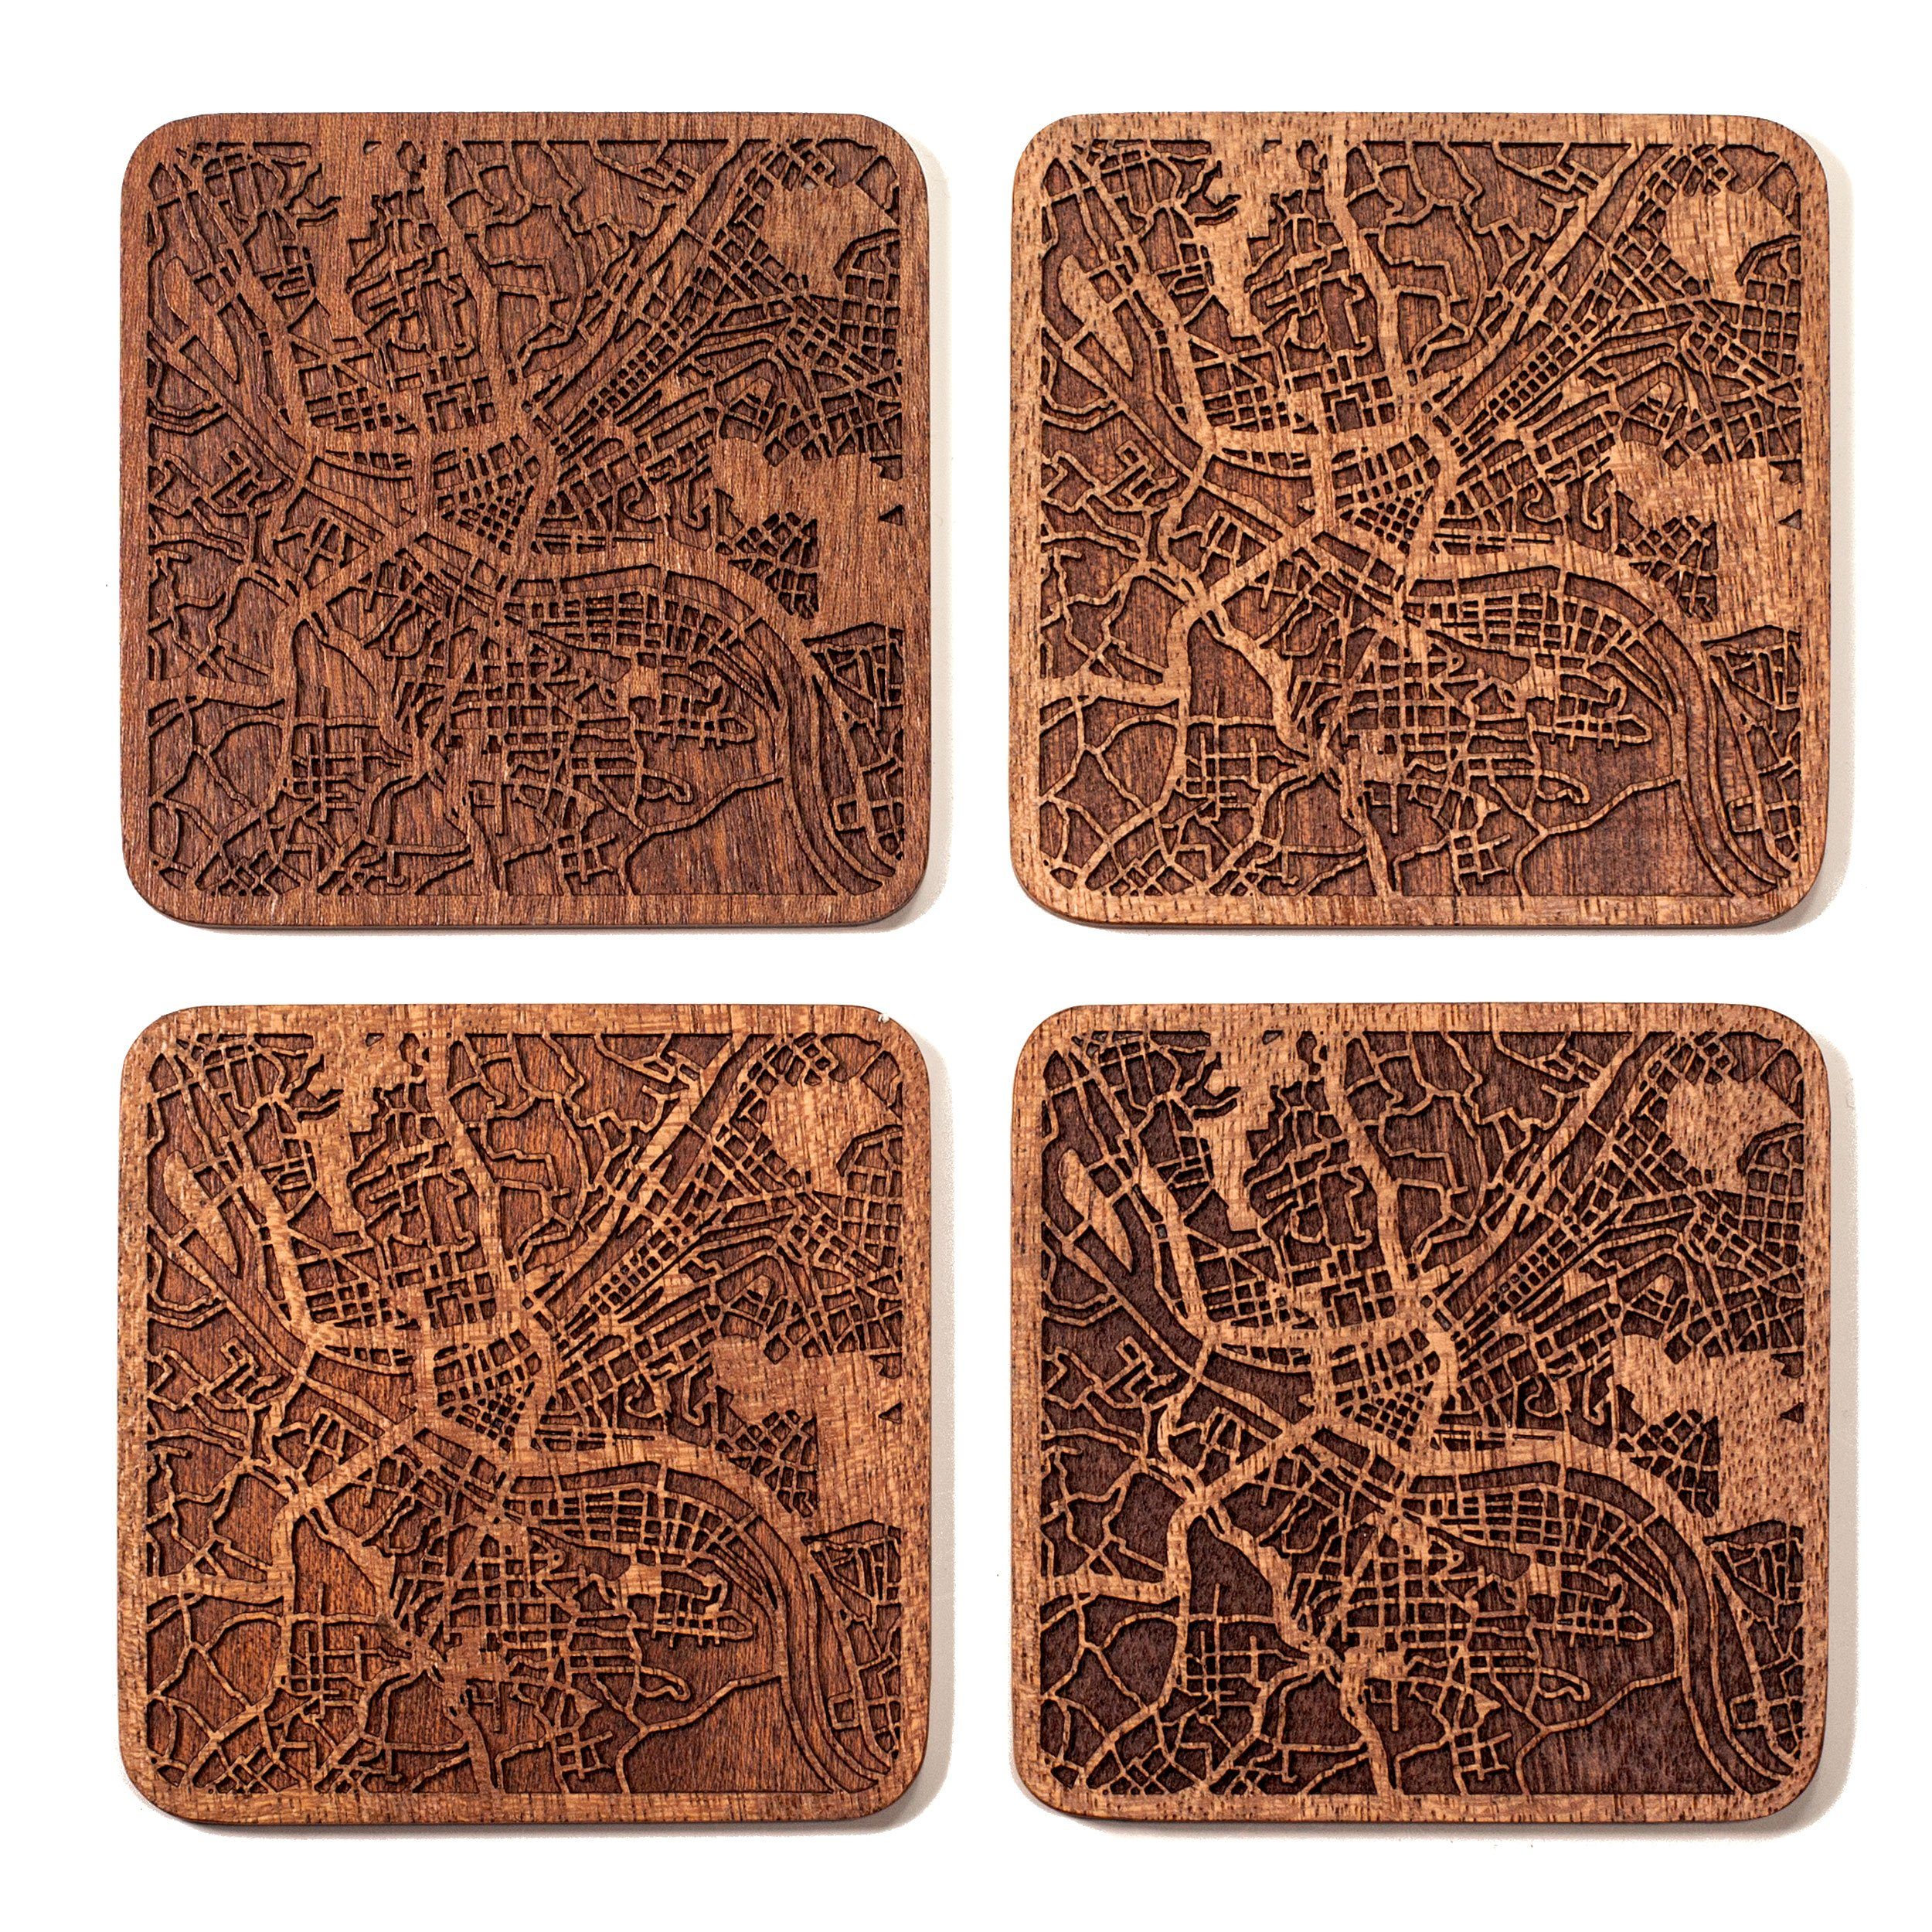 Pittsburgh Map Coaster by O3 Design Studio, Set Of